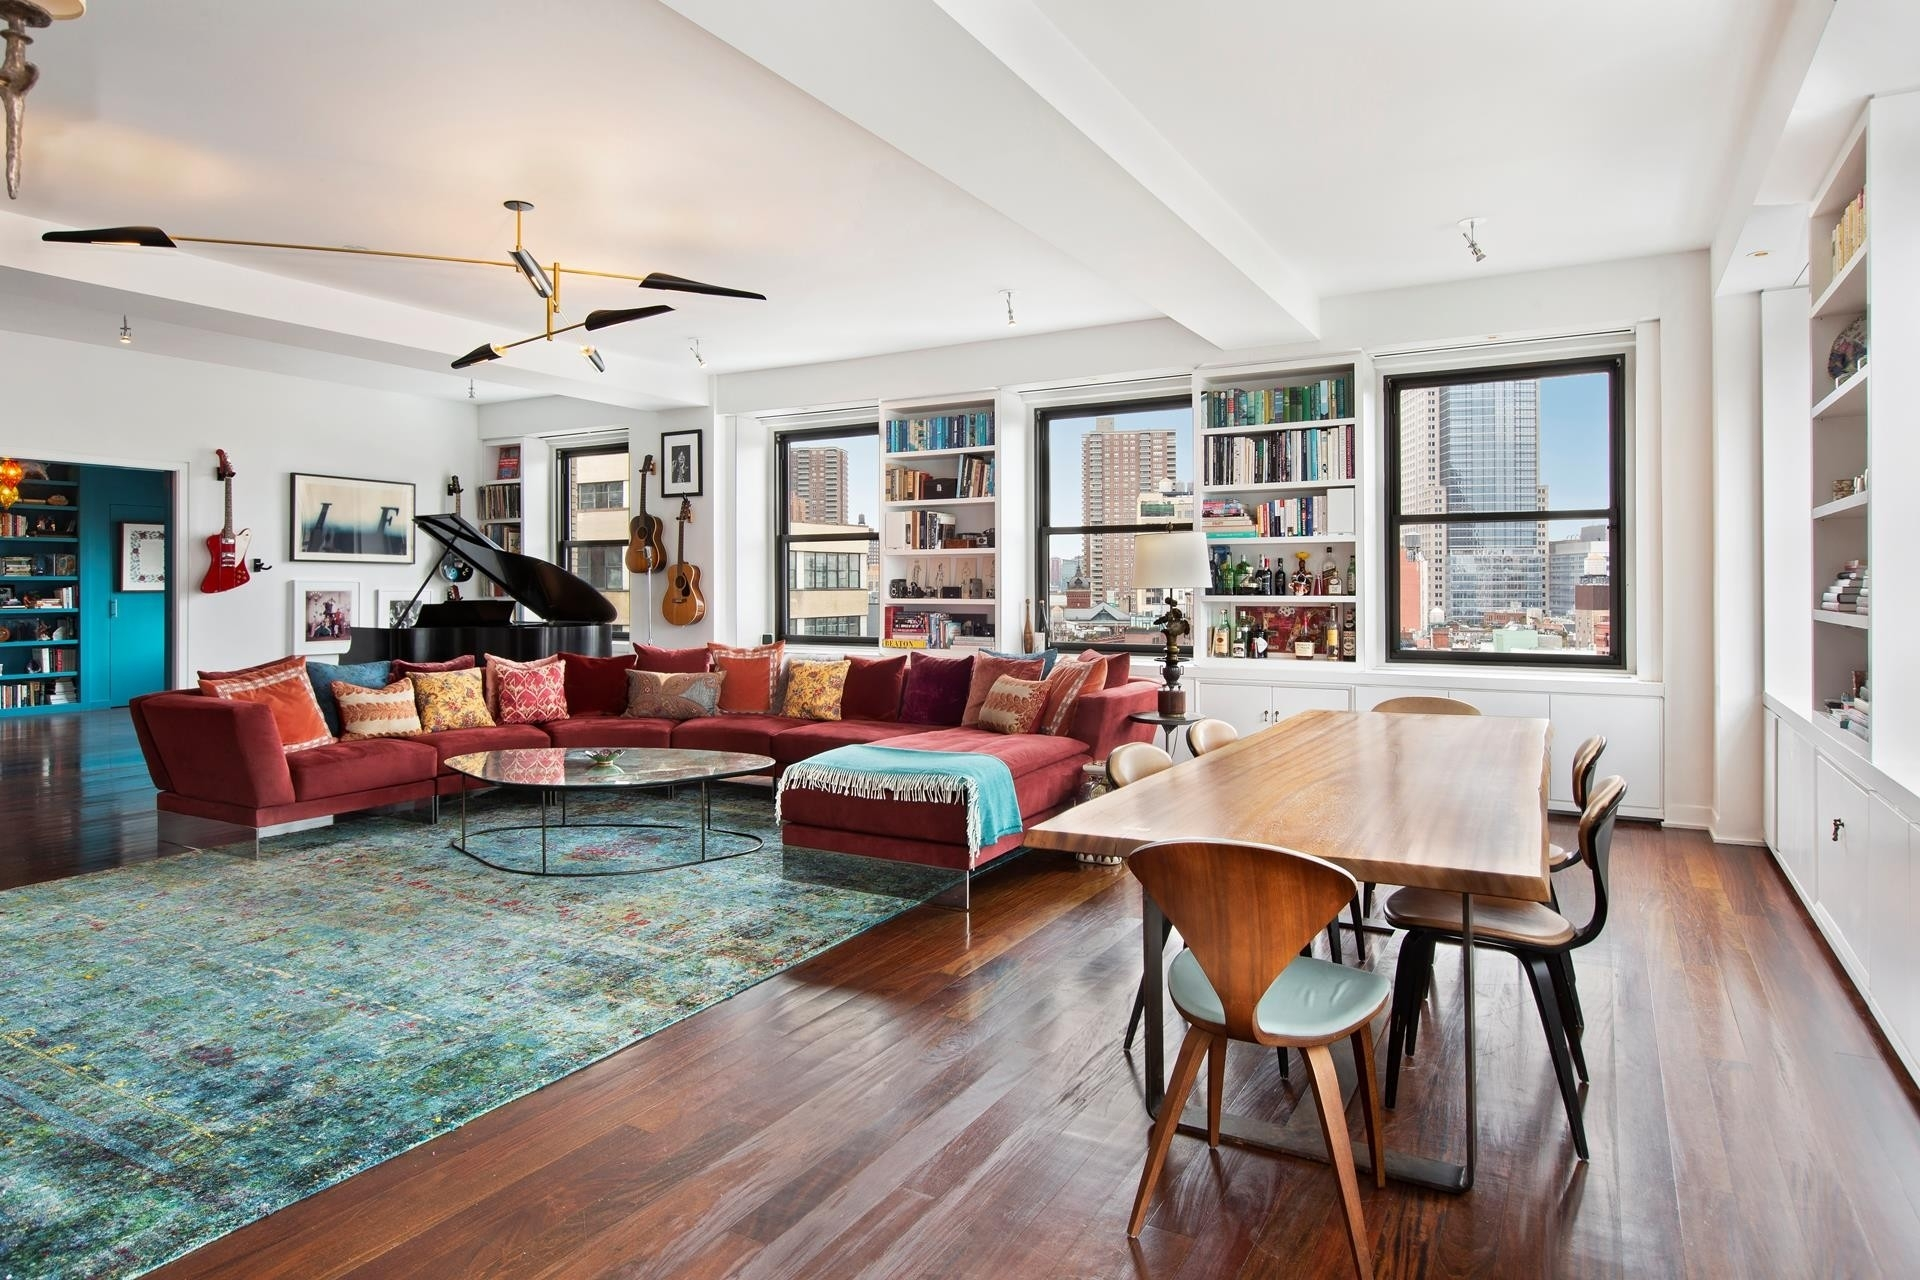 Property en THE FRANKLIN TOWER, 90 FRANKLIN ST , 11THFLOOR TriBeCa, New York, NY 10013